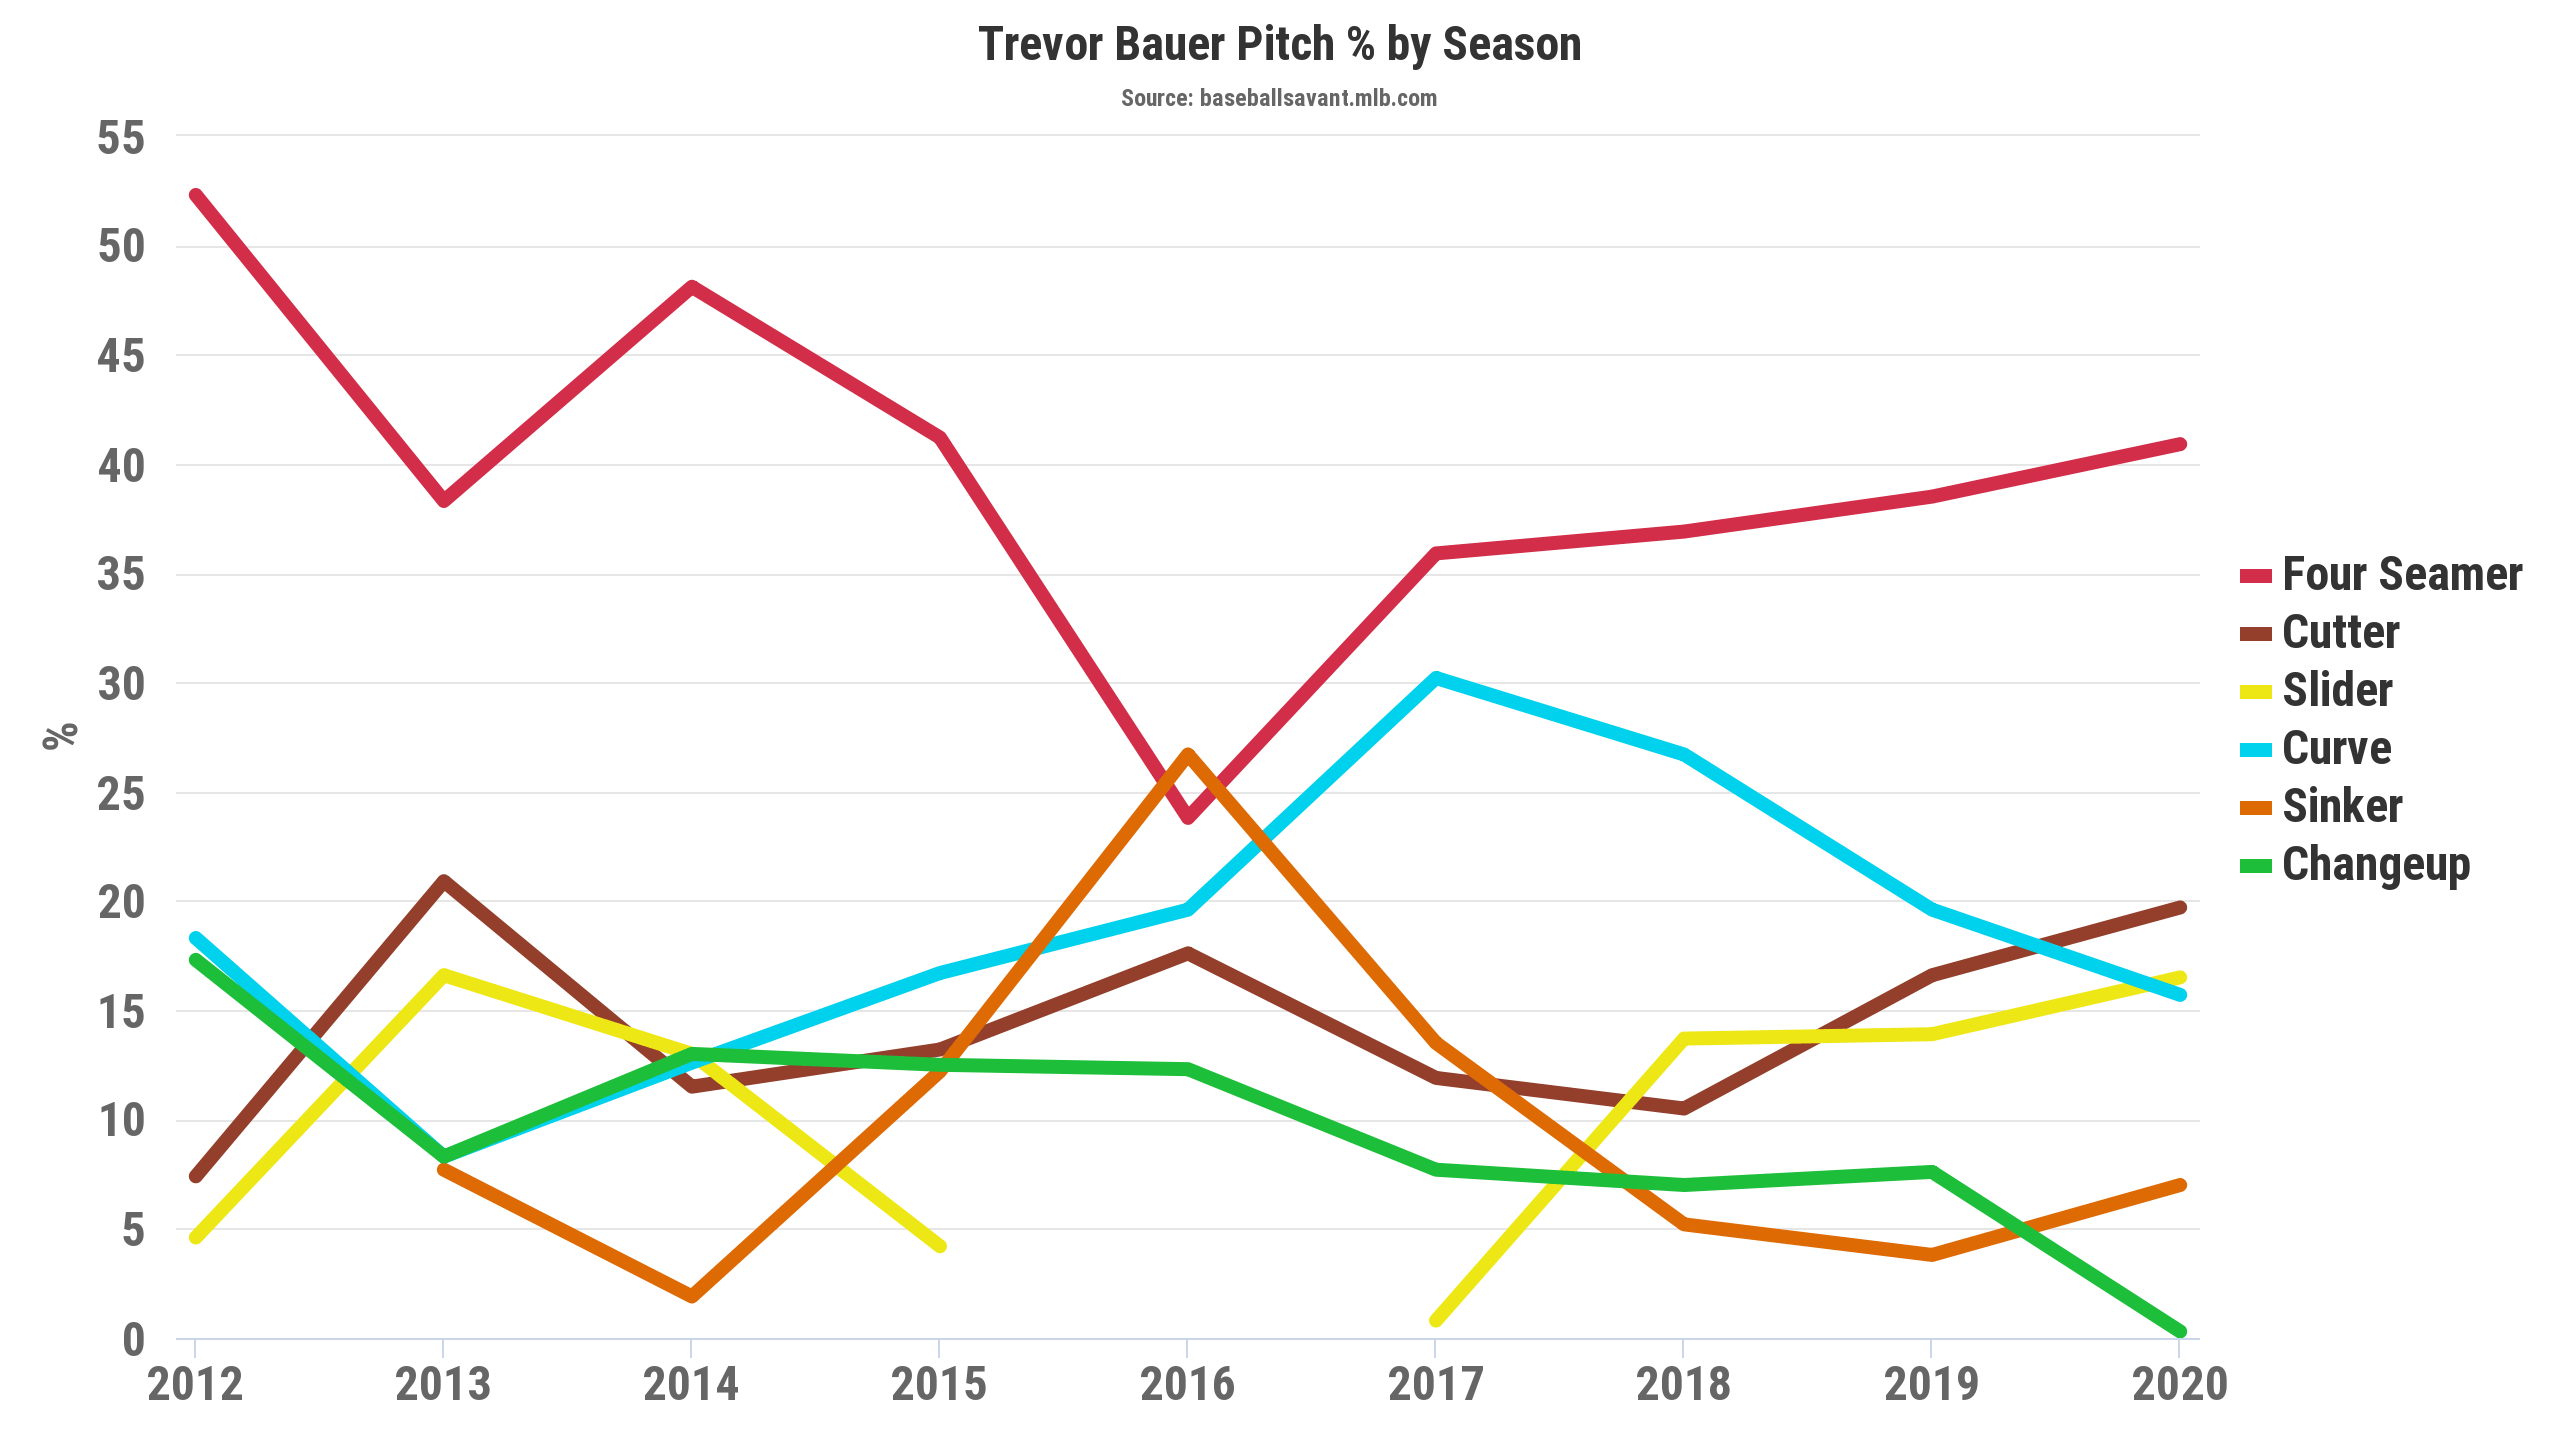 Trevor Bauer Pitch Mix